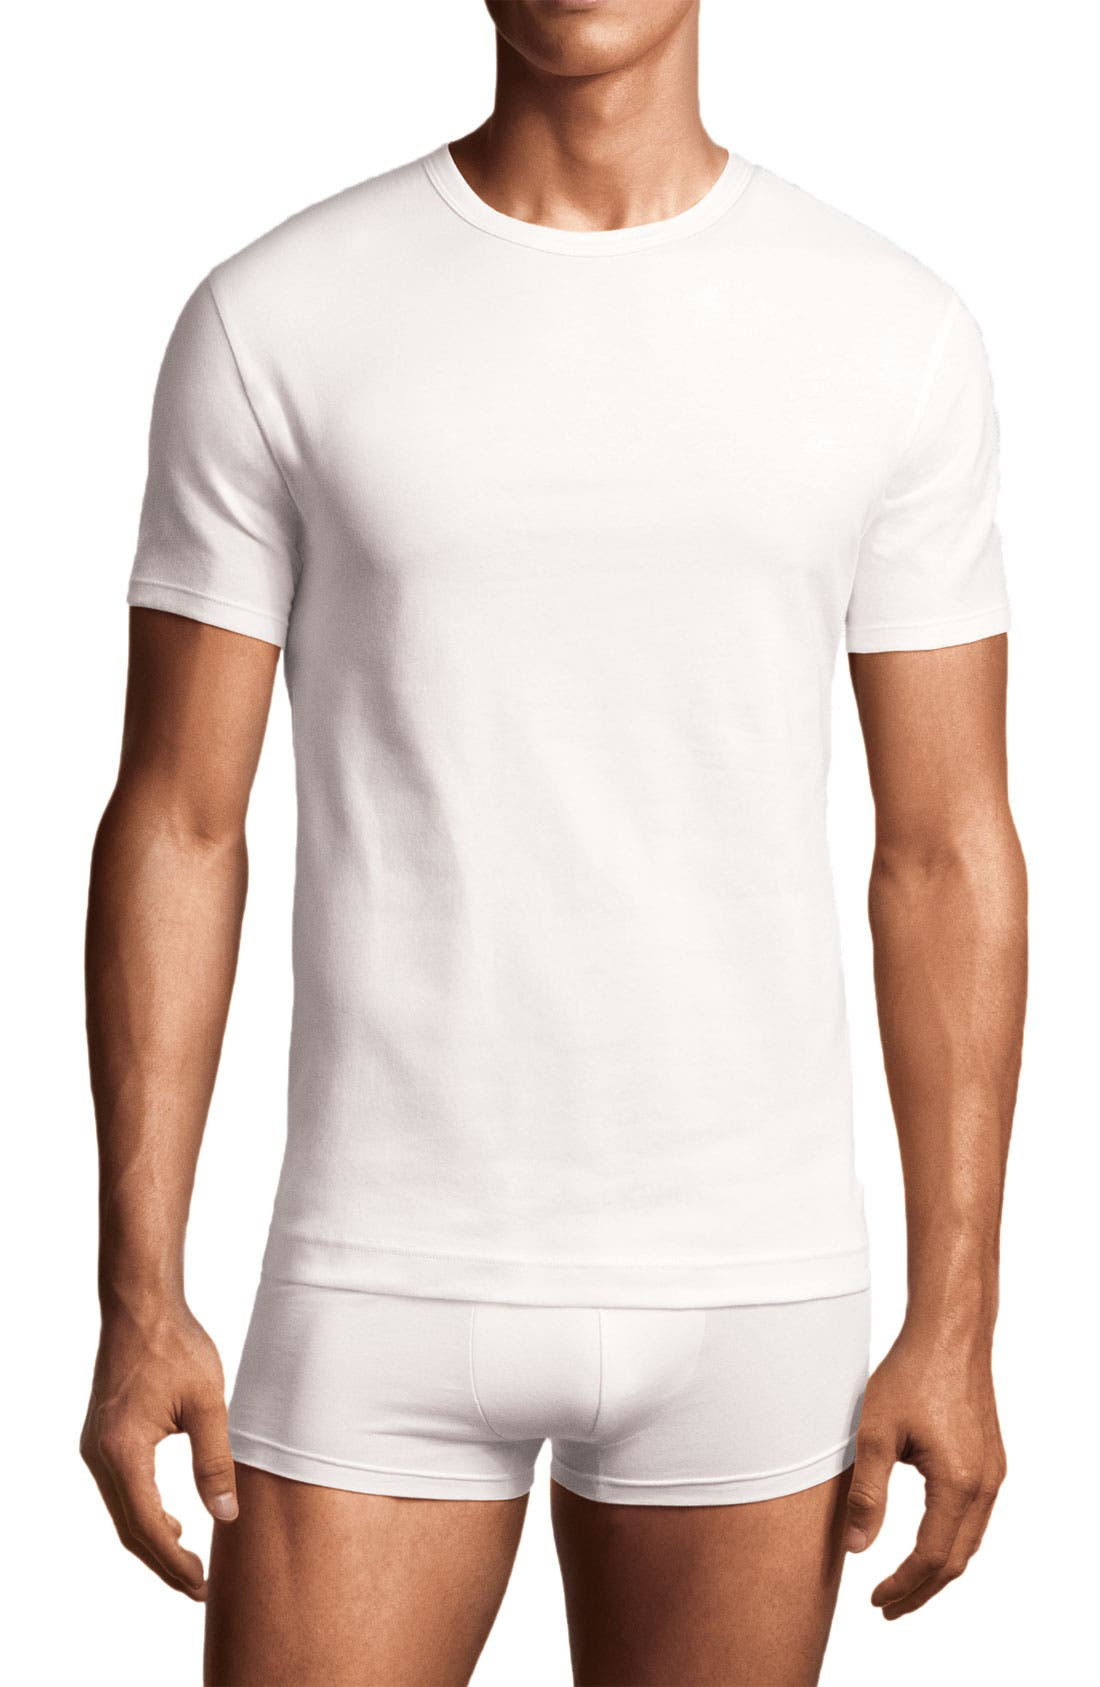 Main Image - Calvin Klein Crewneck T-Shirt (2-Pack) (Tall)